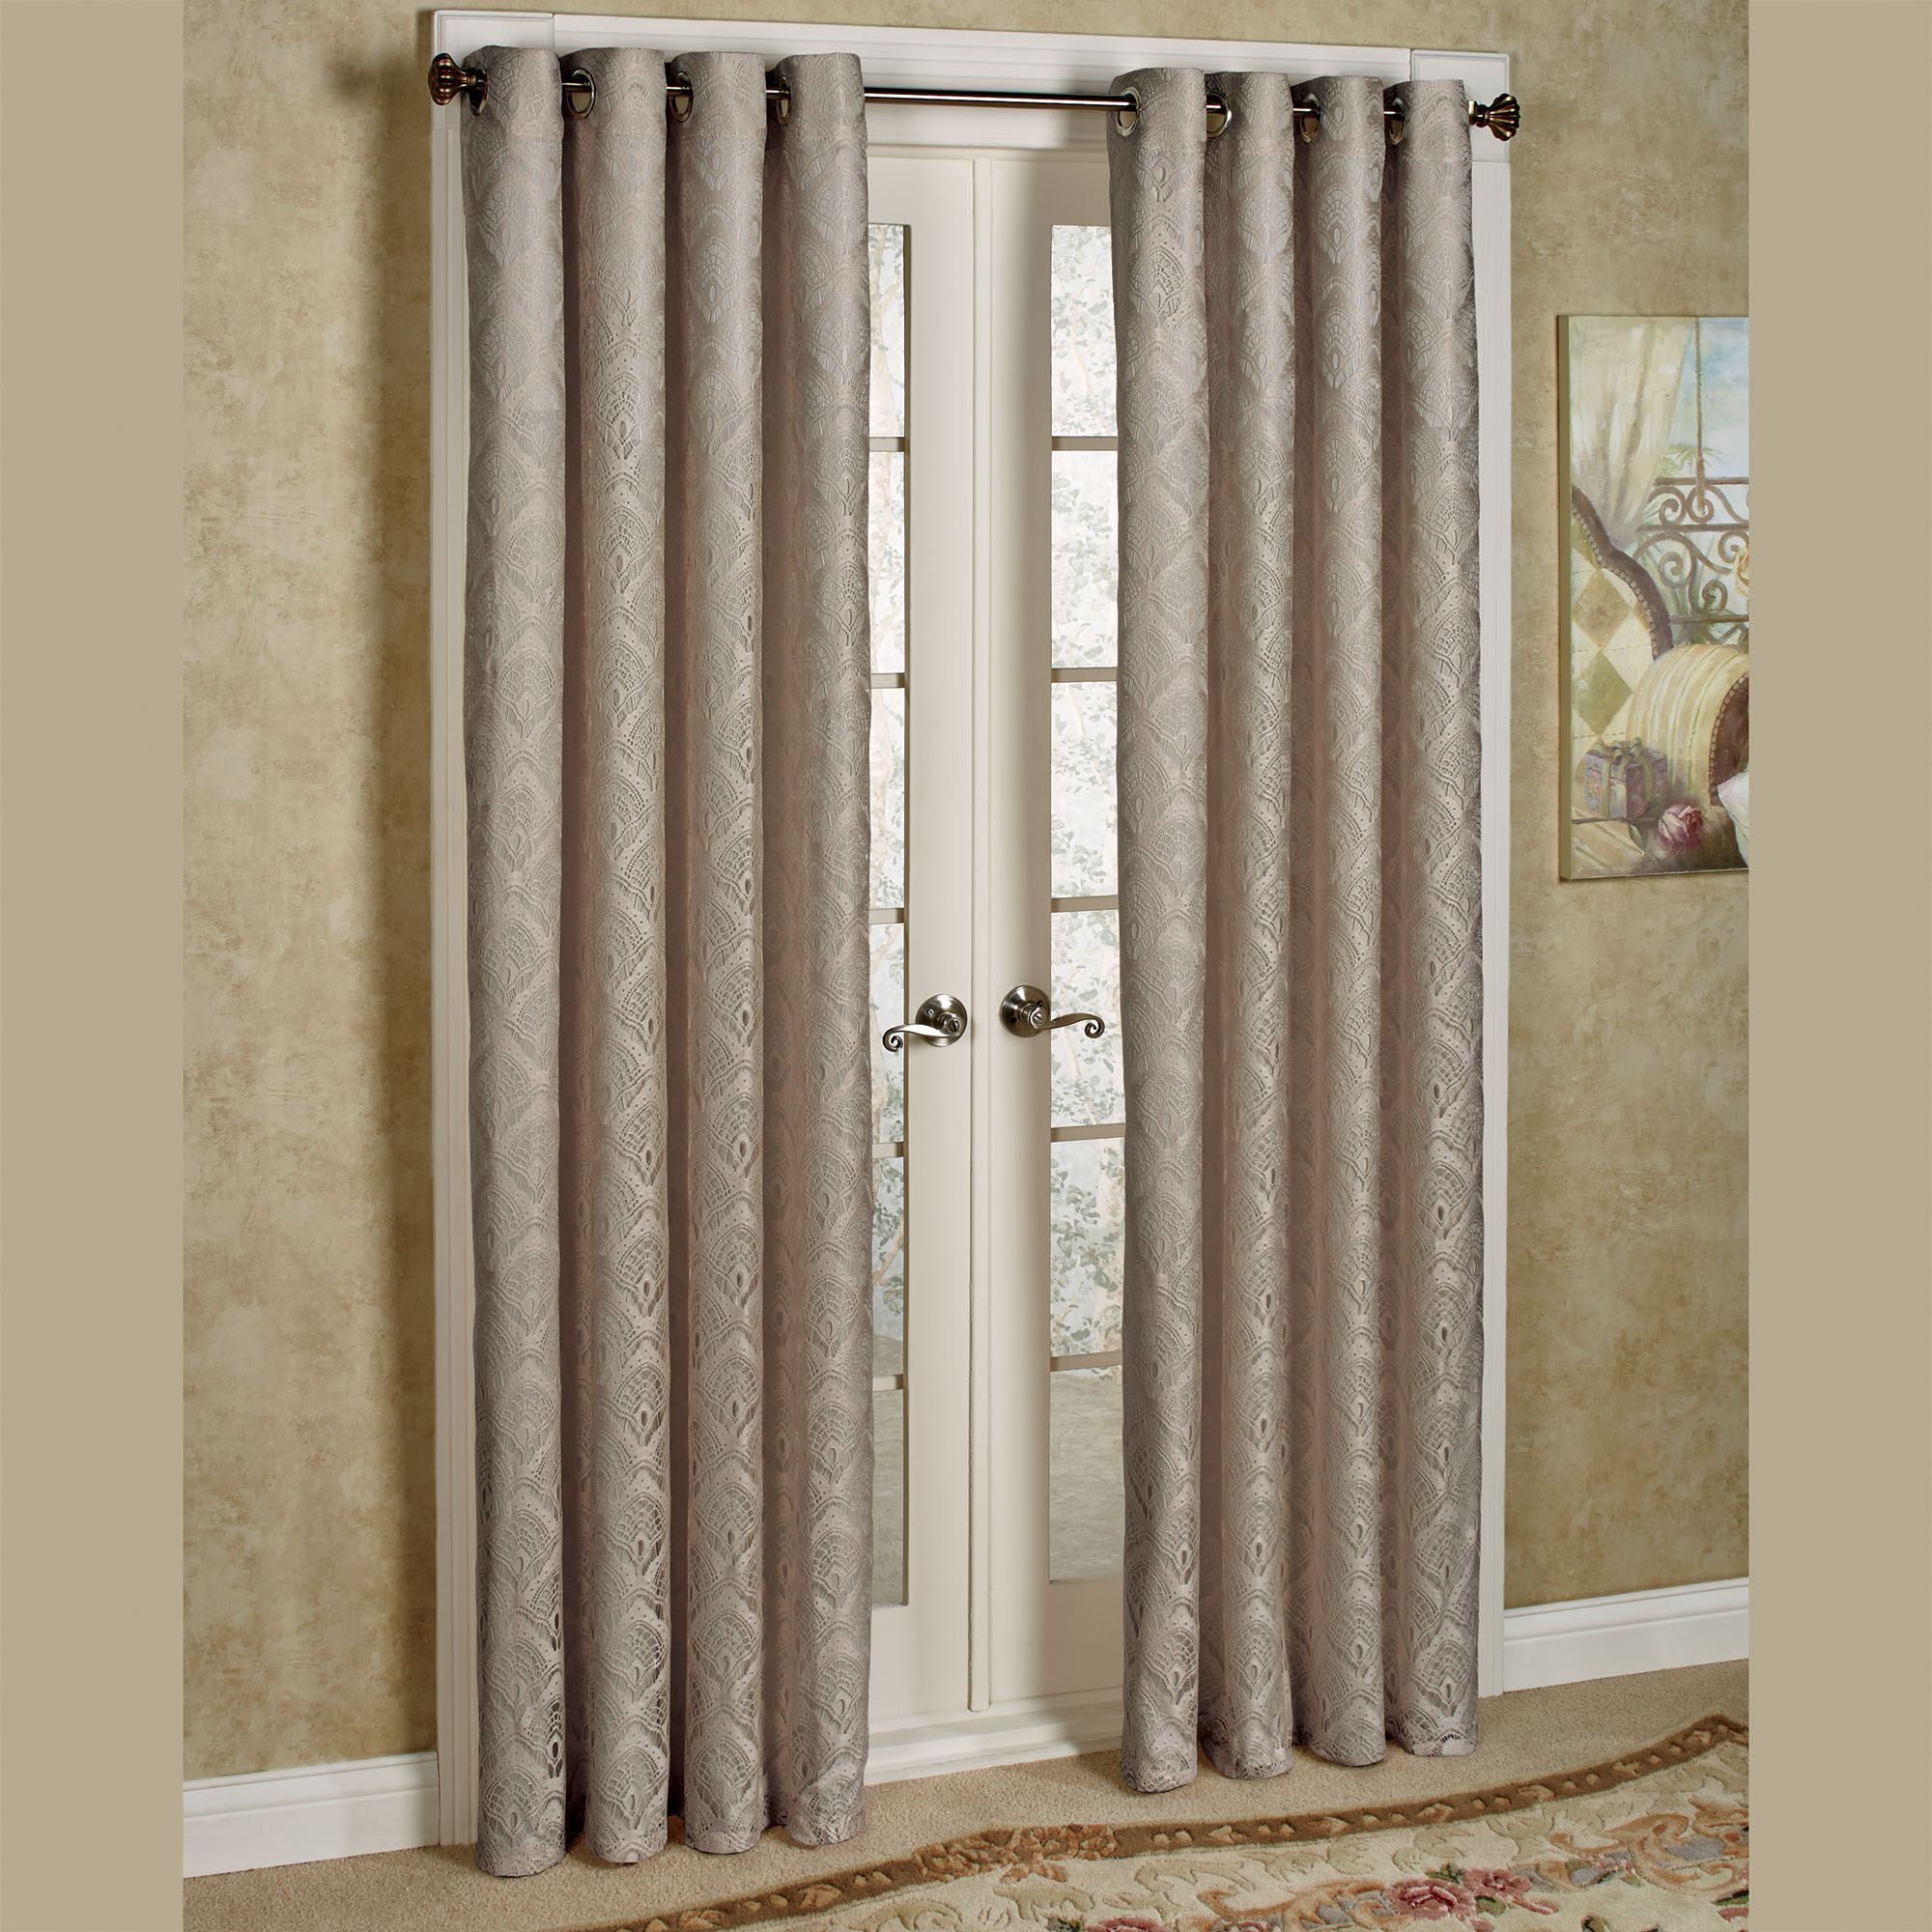 of tab world do category white curtains sahaj striped rugs market set jute treatments tie top xxx drapes window